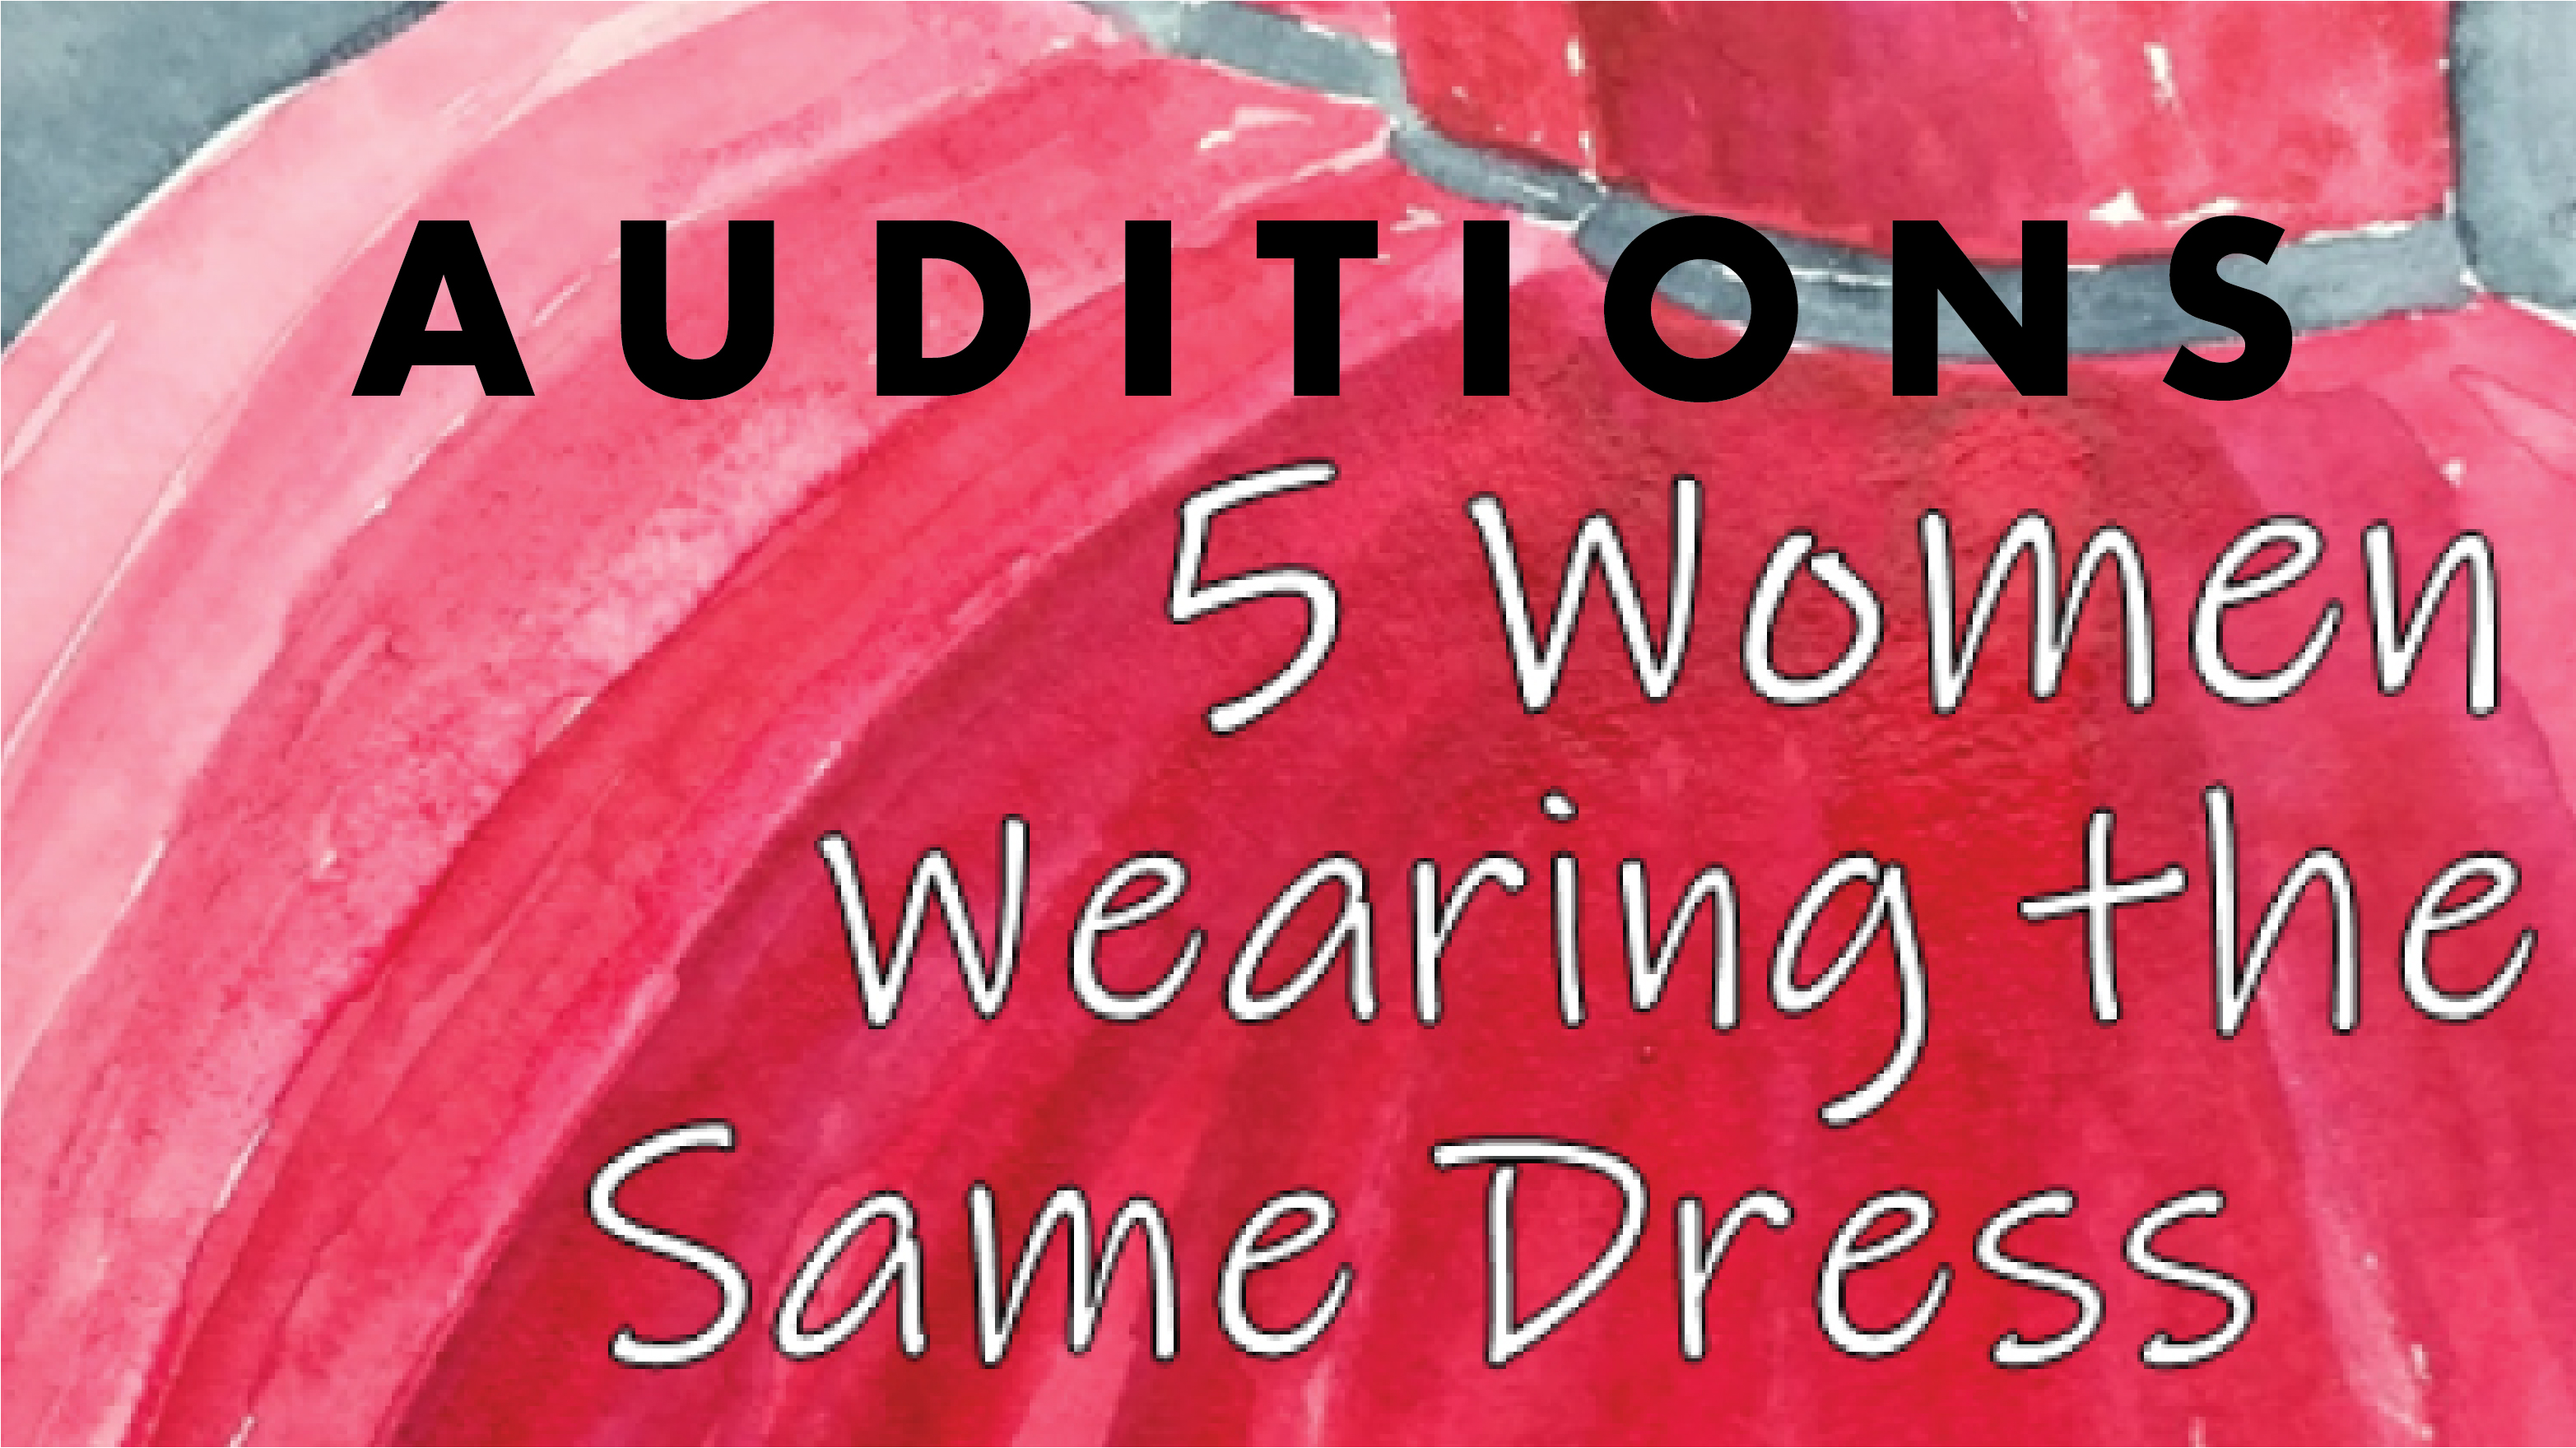 5 Women Wearing the Same Dress Auditions